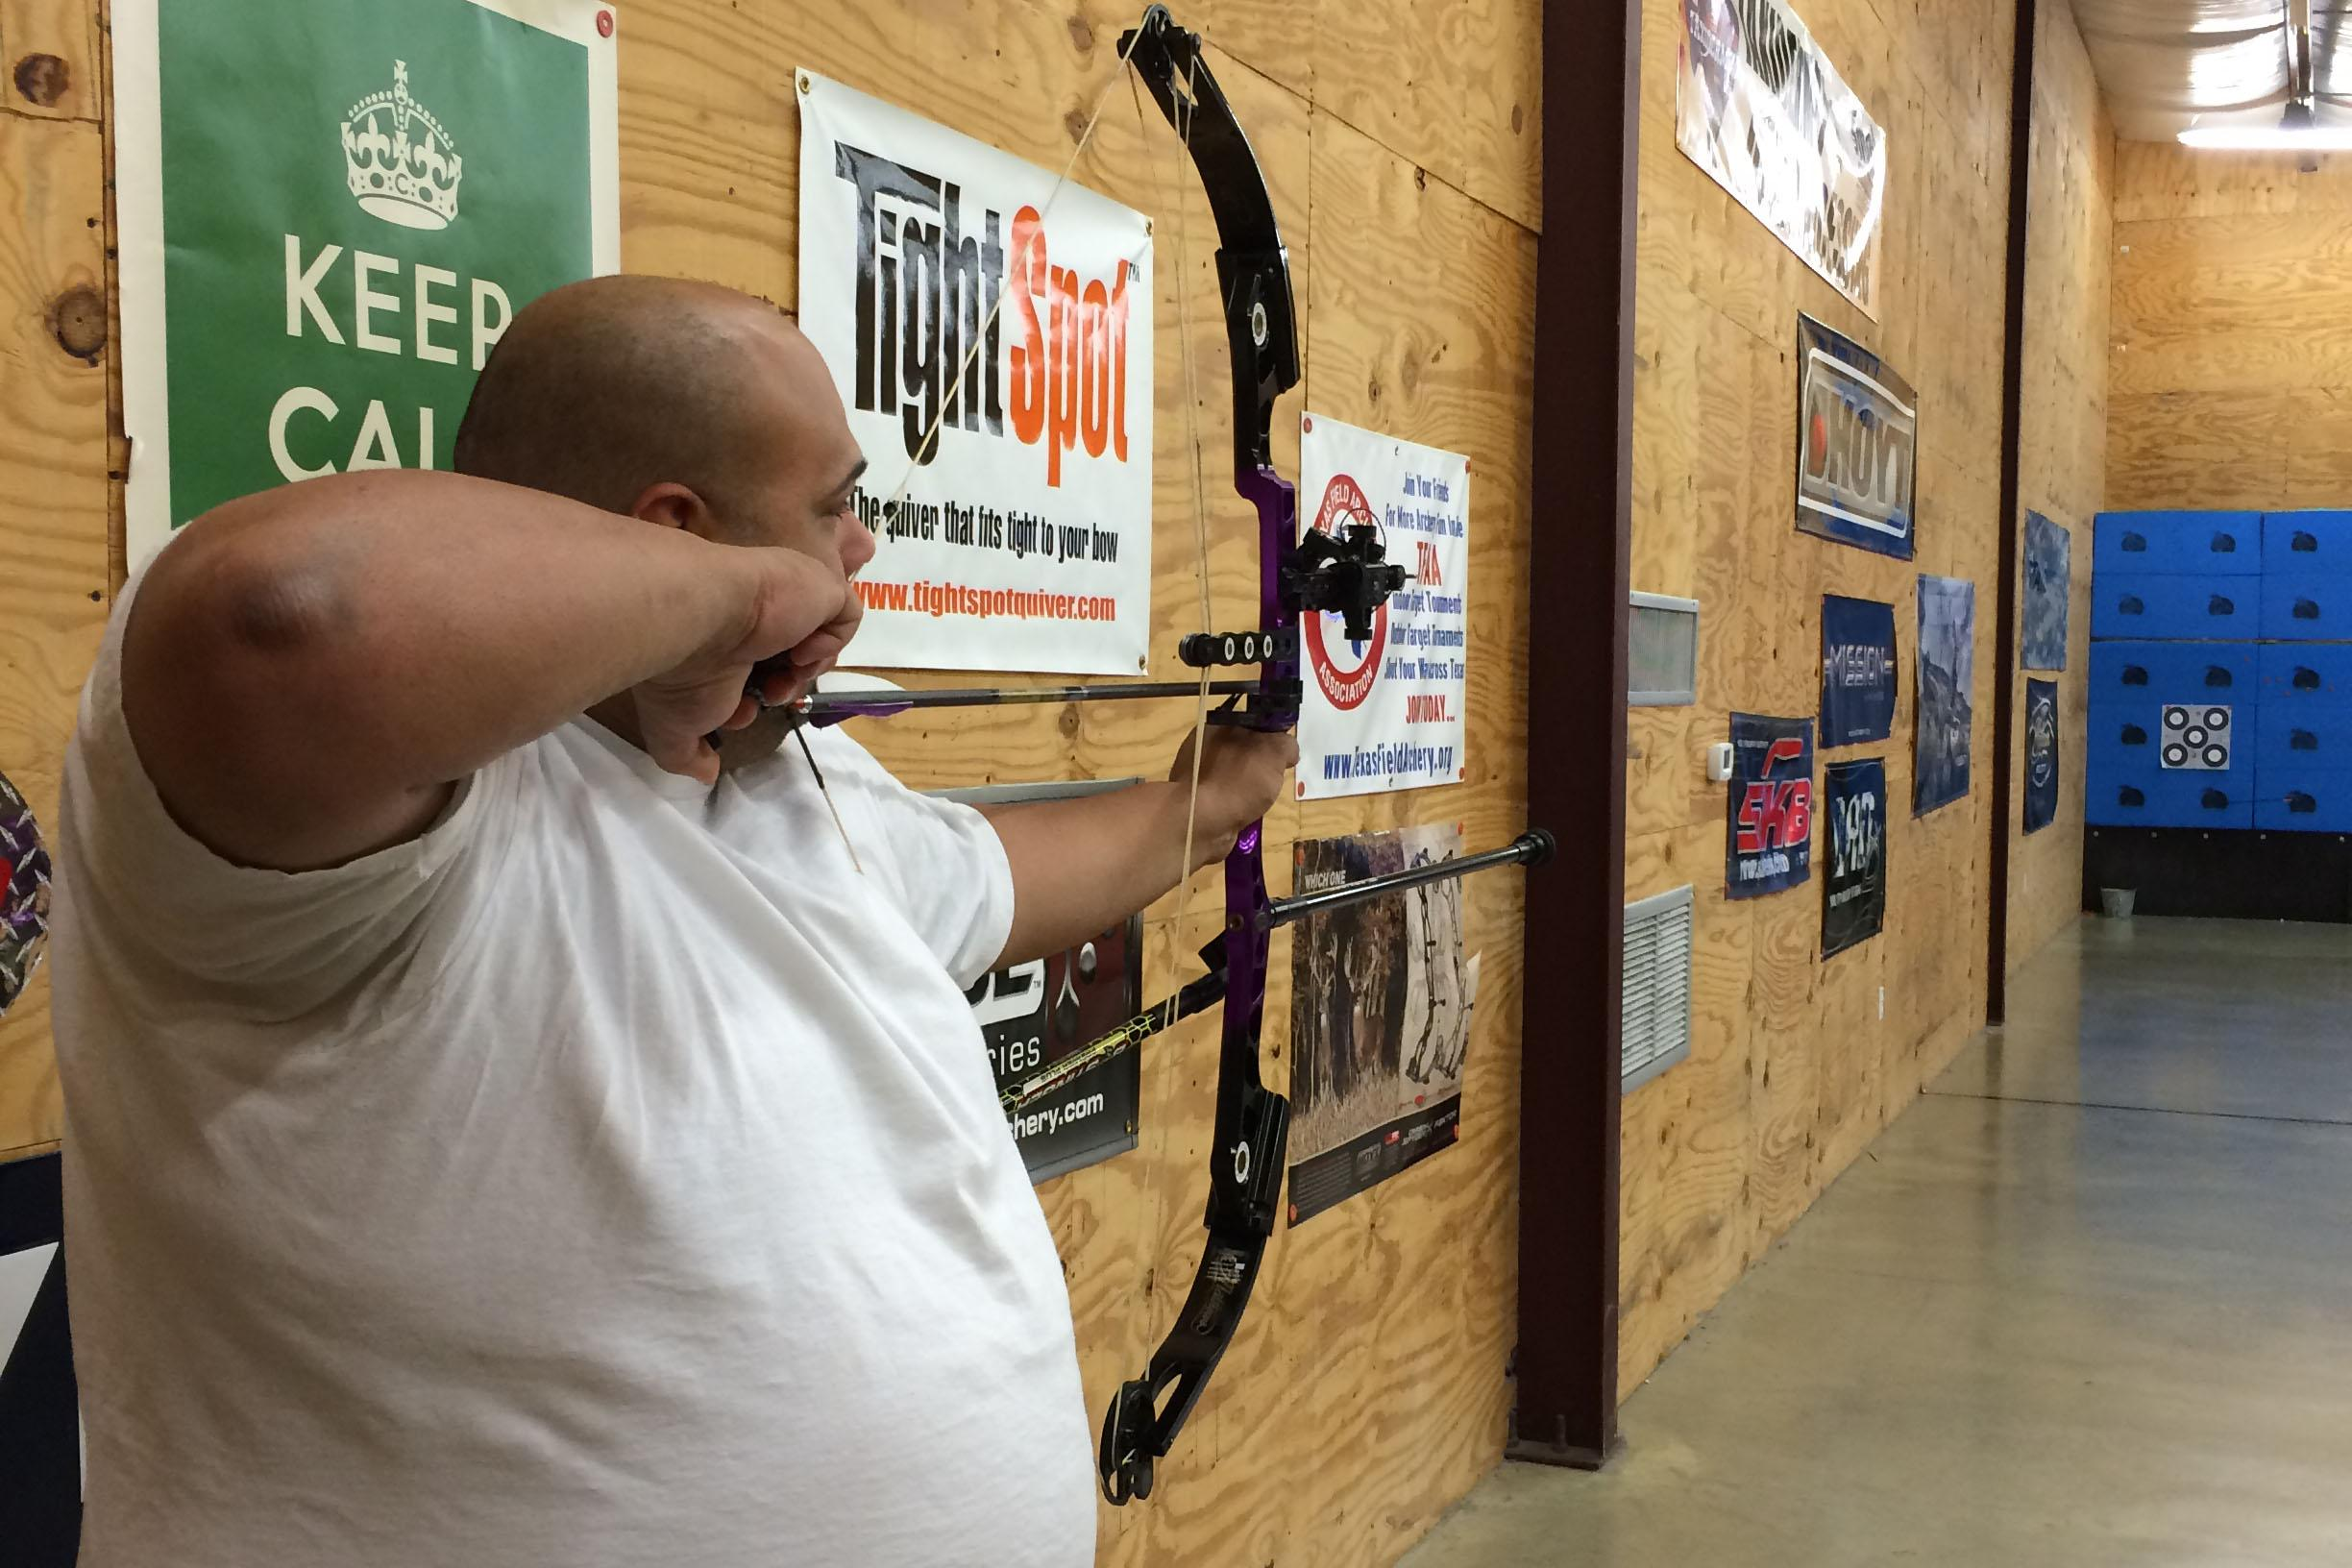 Roland Rocha prepares to shoot from his compound bow.